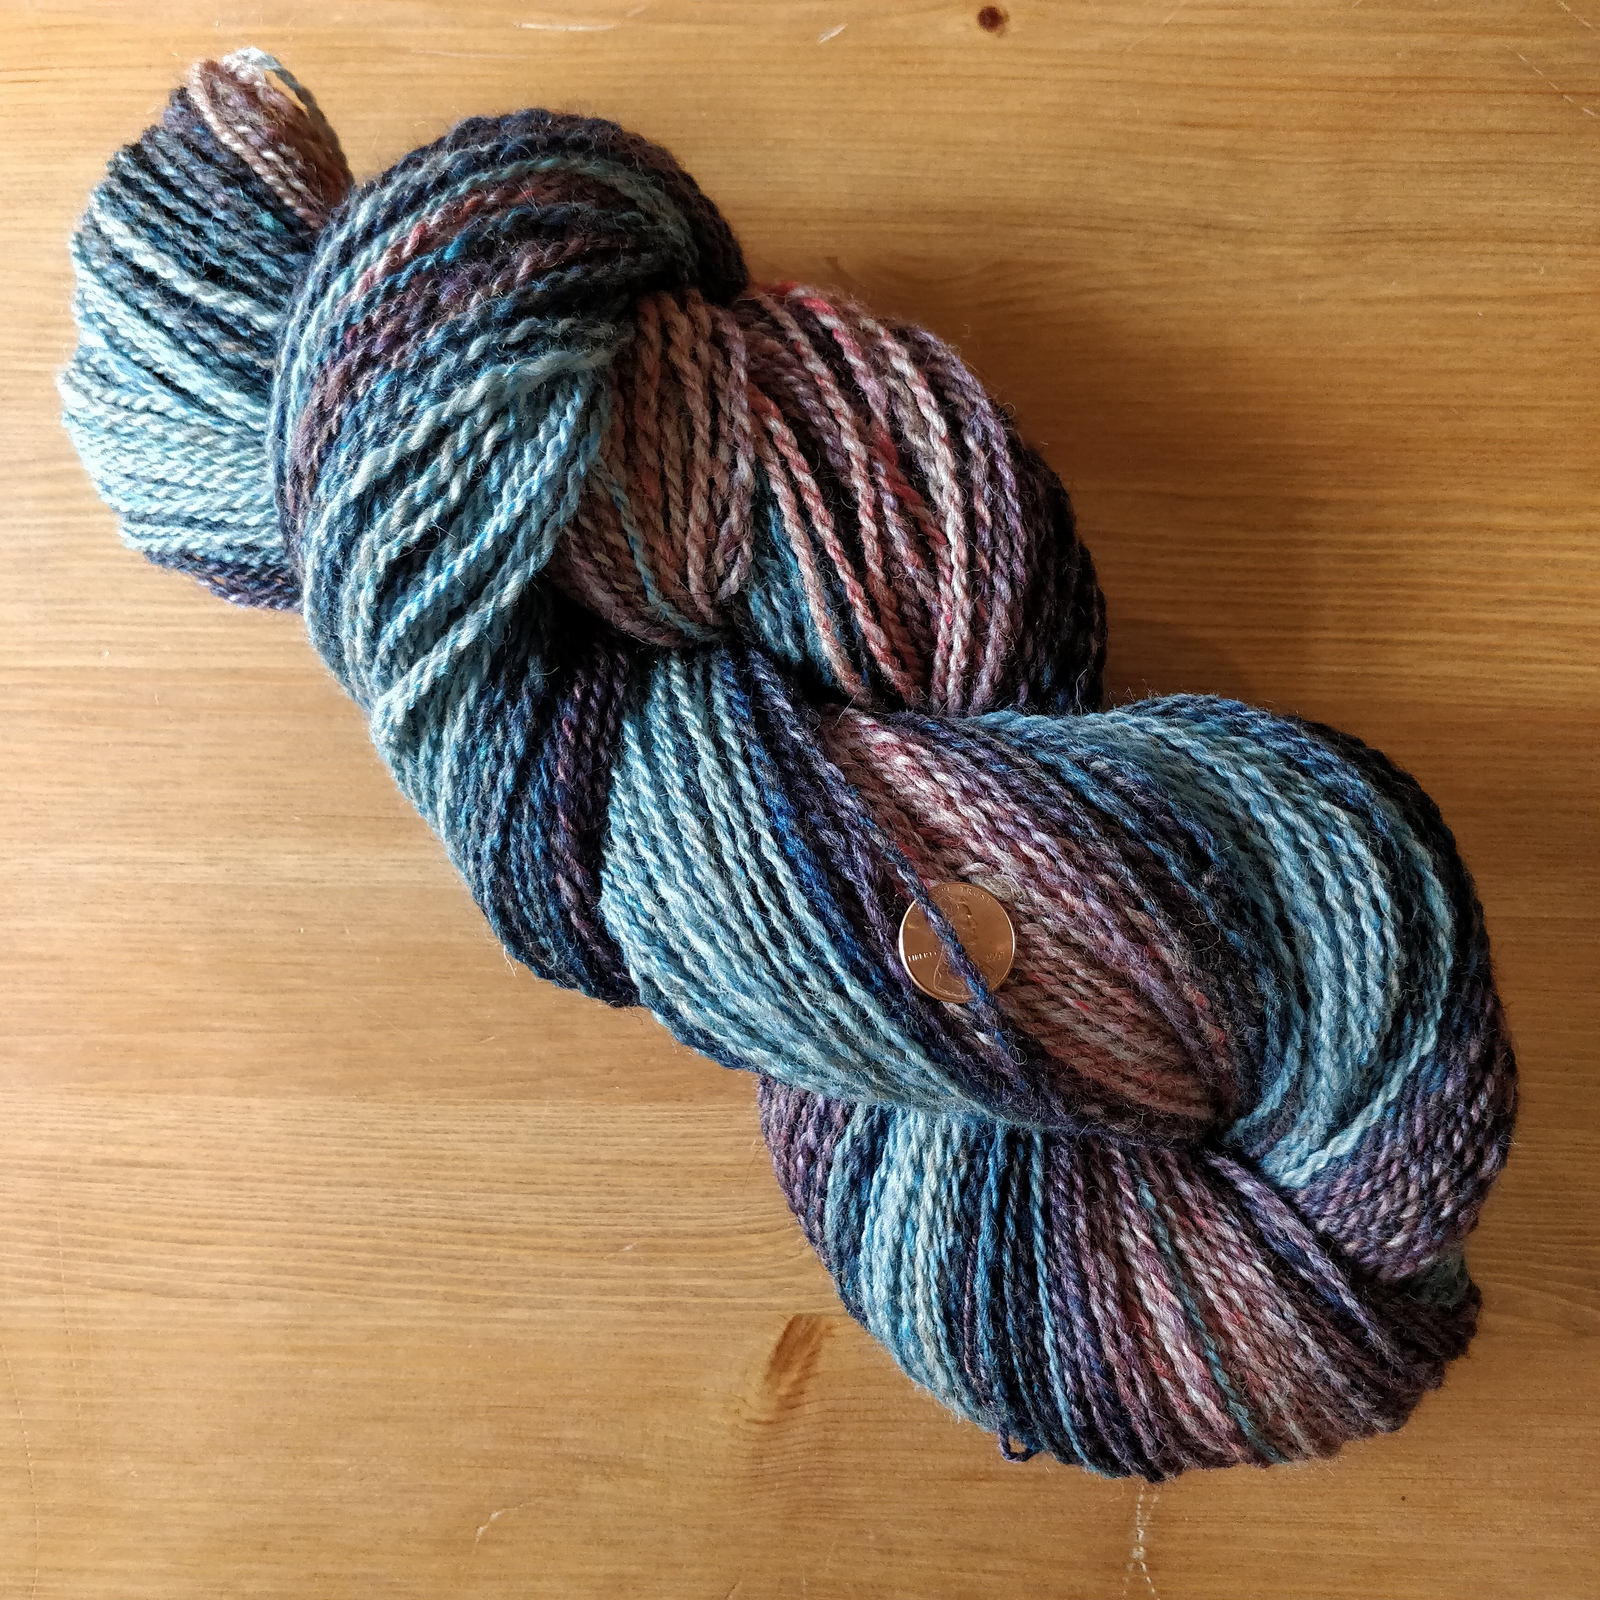 A skein of handspun yarn sits on a wooden table. It is spun in a gradient of medium pink through dark purple and dark blue to light blue.